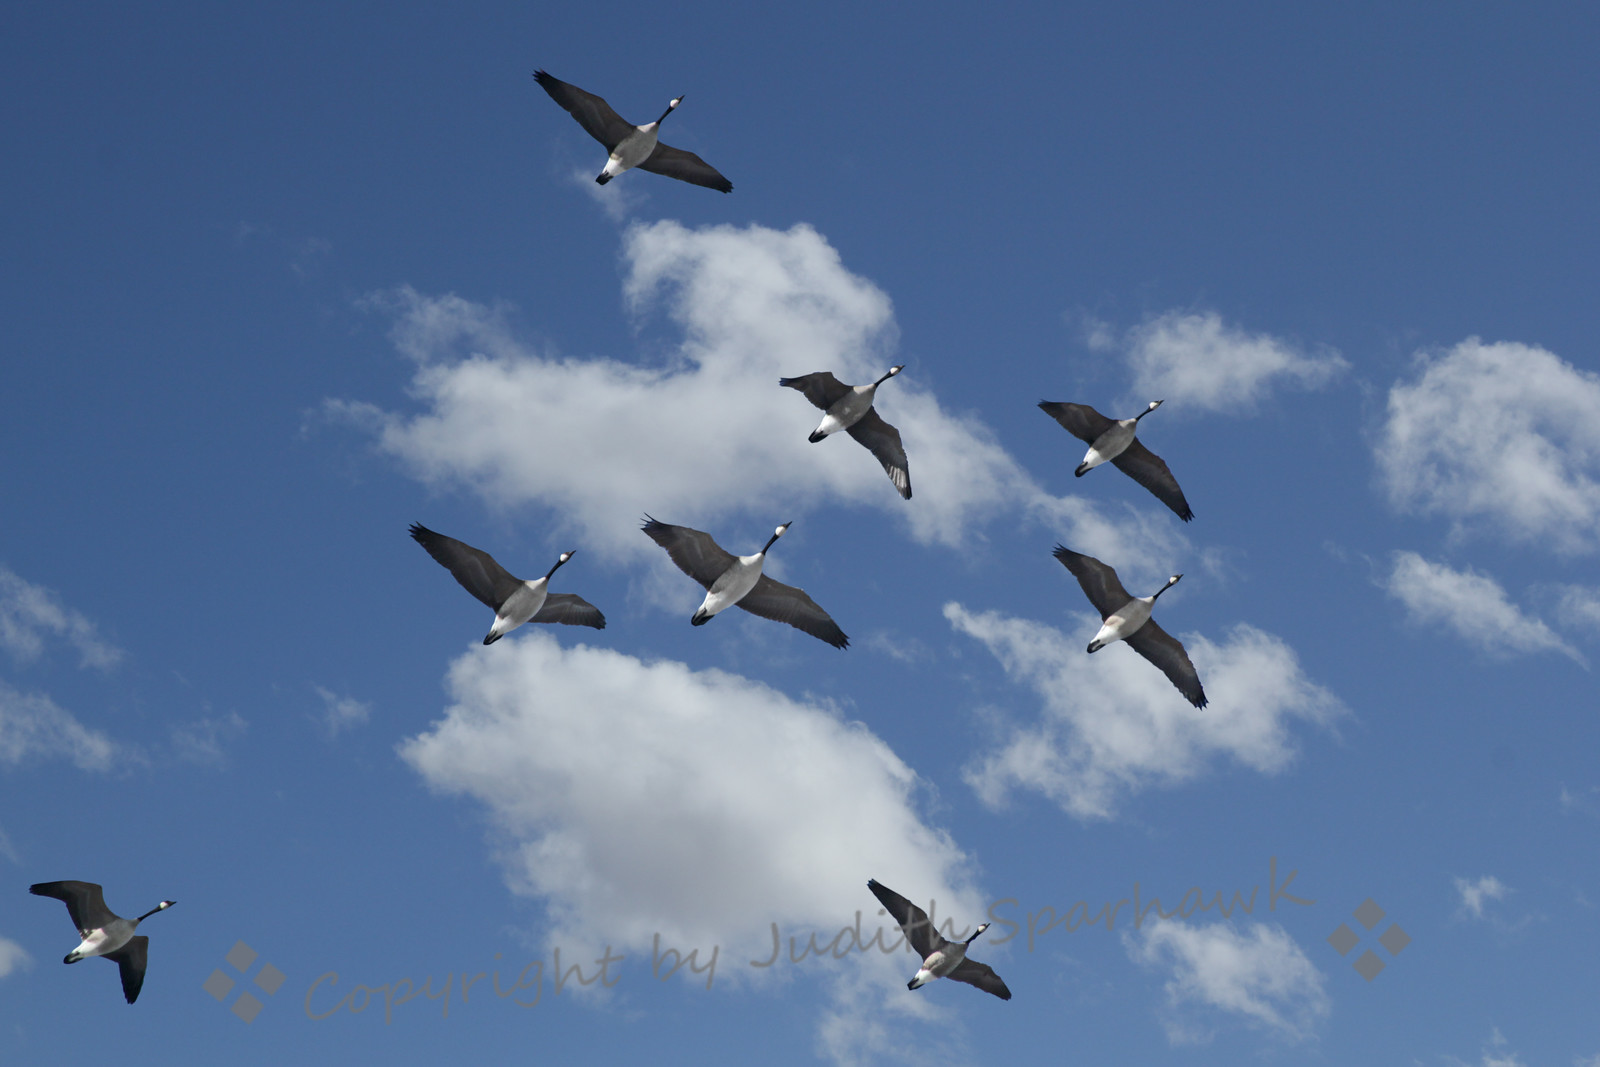 """Canada Geese Flying ~ These geese flew over while I was visiting in Canada this week.  I referred to them as Canada Geese.  A local told me they were just """"geese"""", since they were in Canada."""